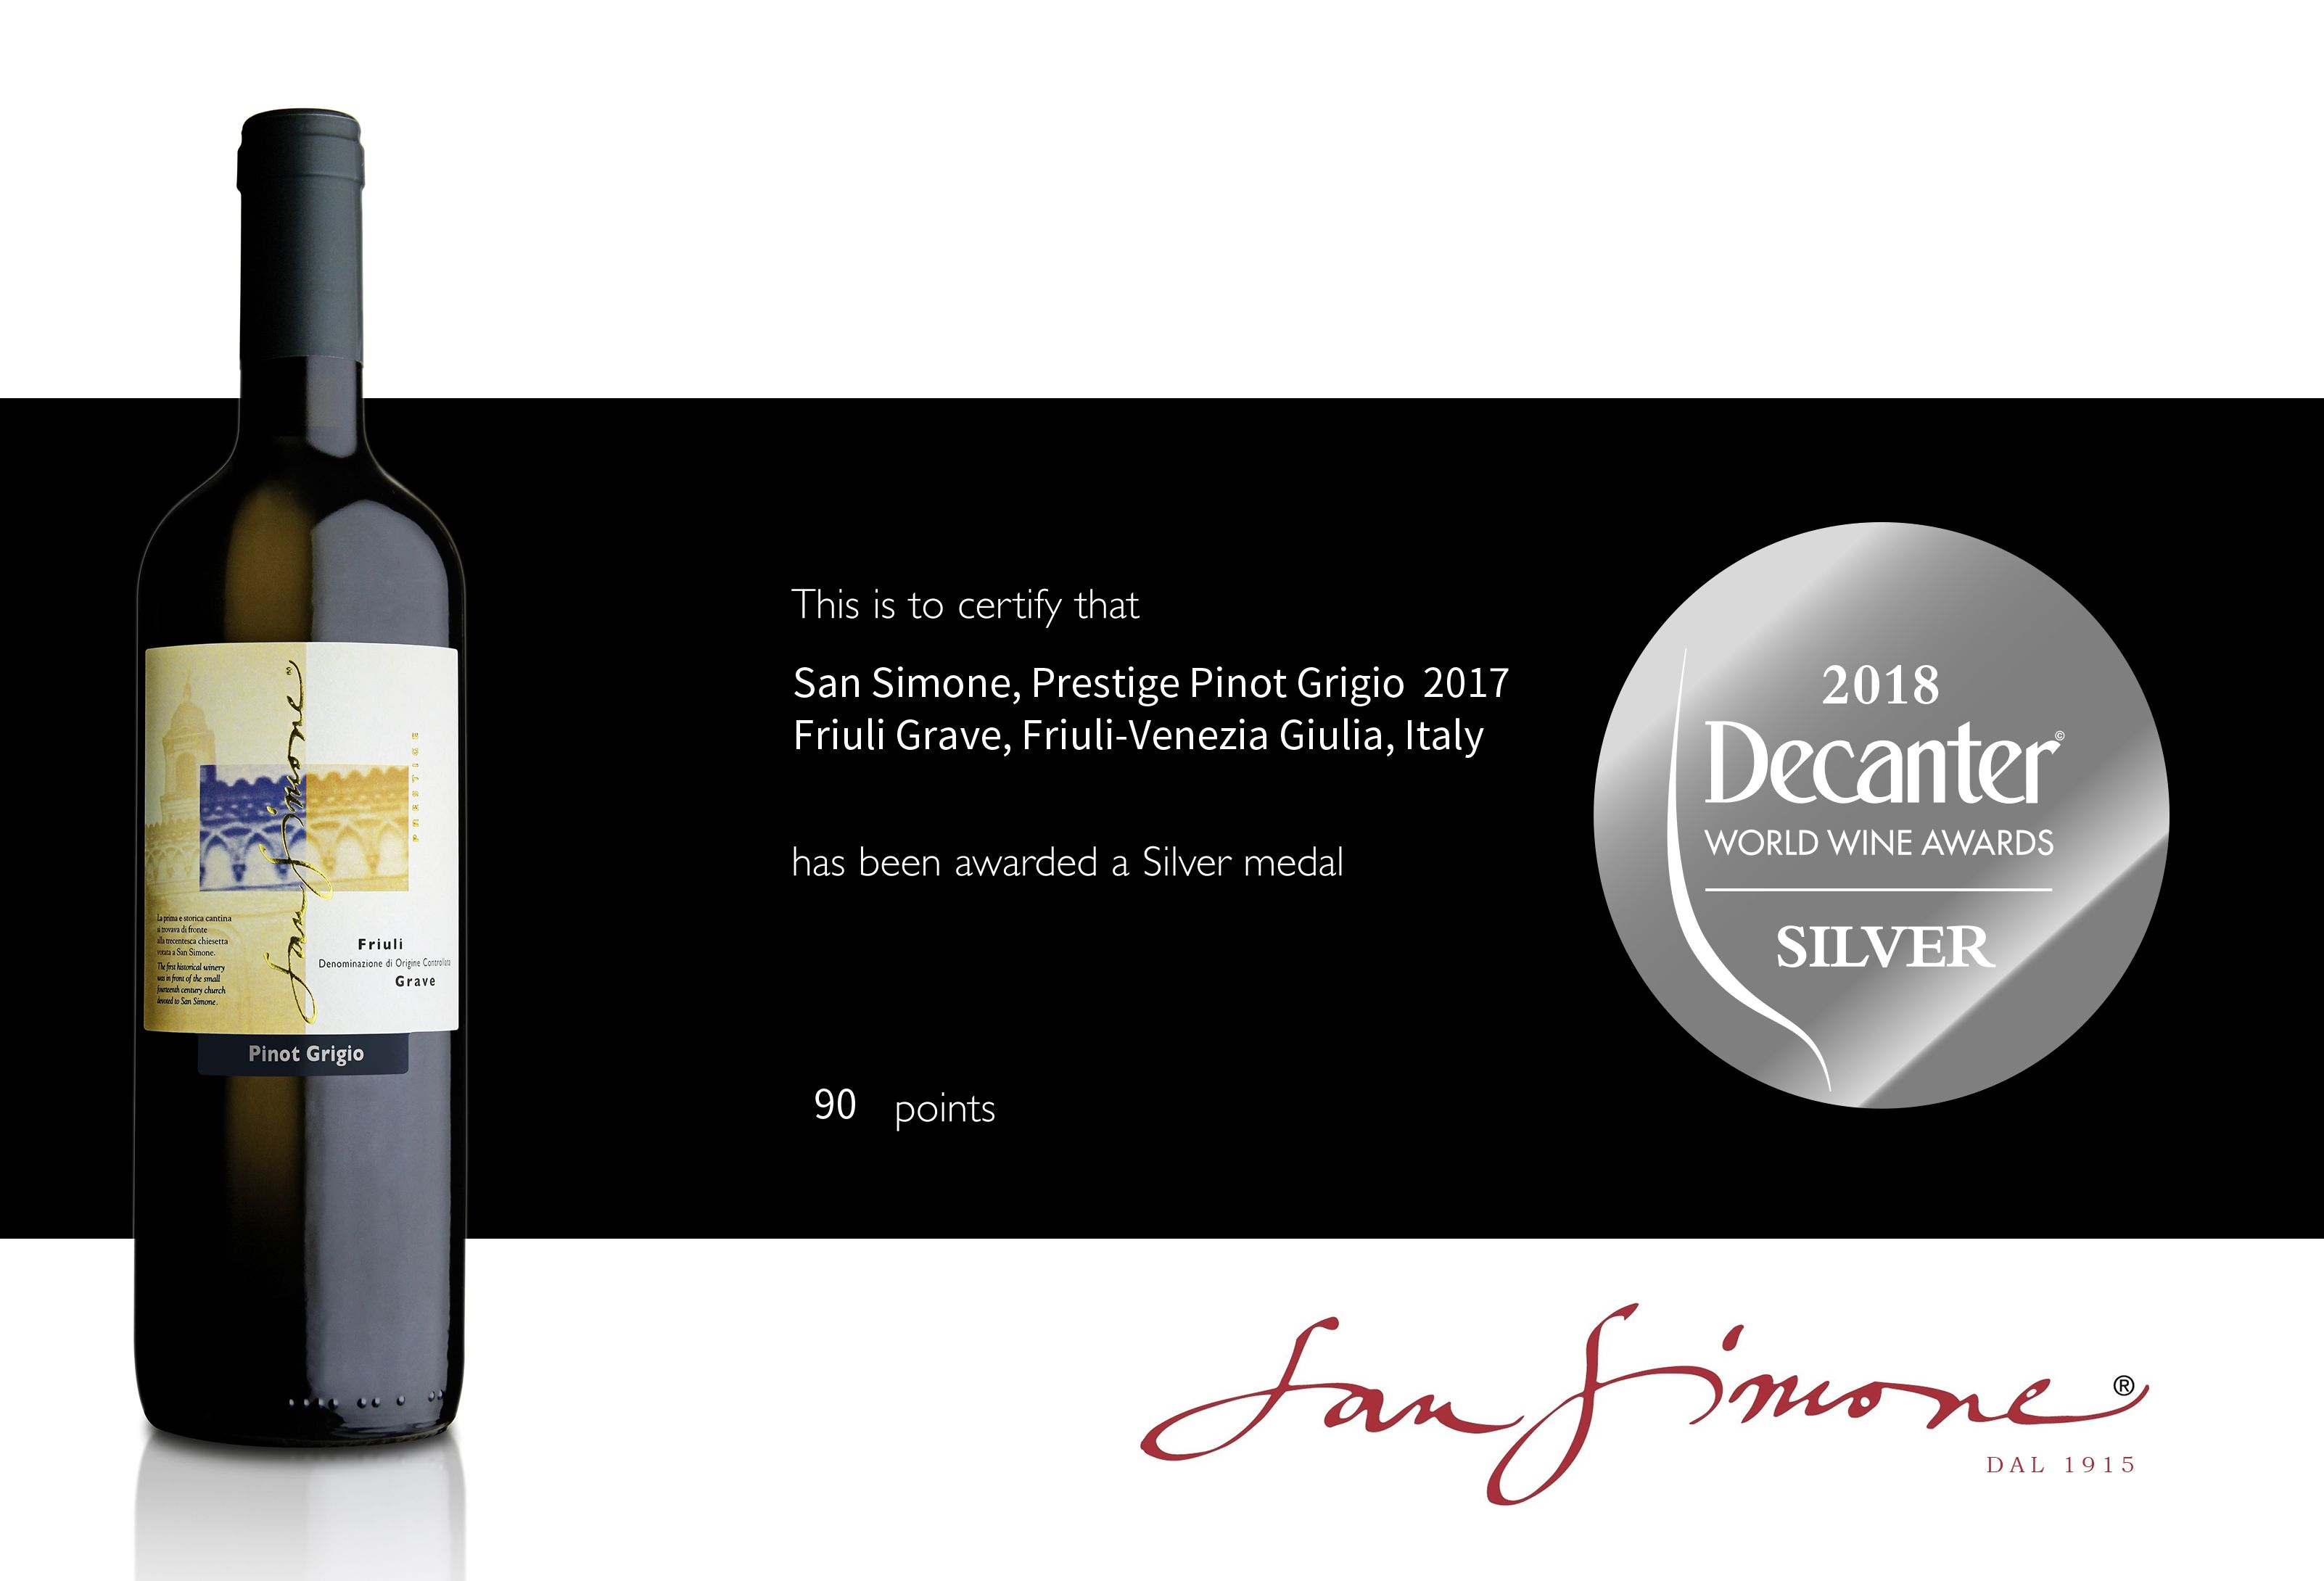 We are glad to share that our Pinot Grigio Prestige 2017 has